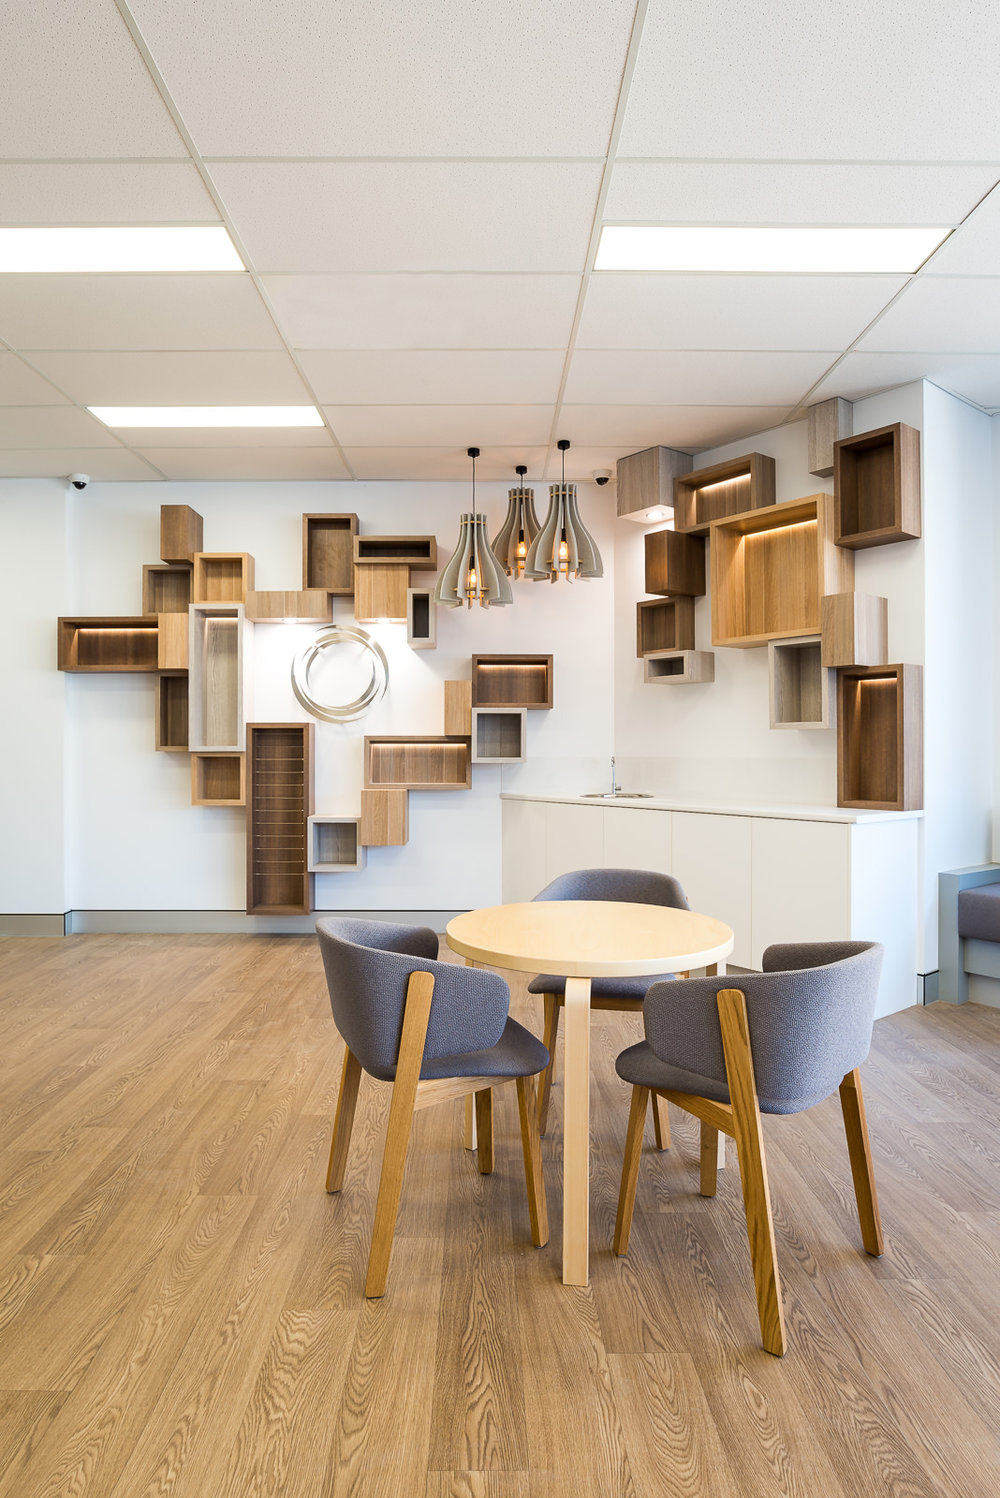 """Your lights are always a refreshing addition to our waiting spaces and are often praised by patients. The pendant lights with their timber elements and selected globe temperature fit beautifully with the modular wall."" - — Tom P"